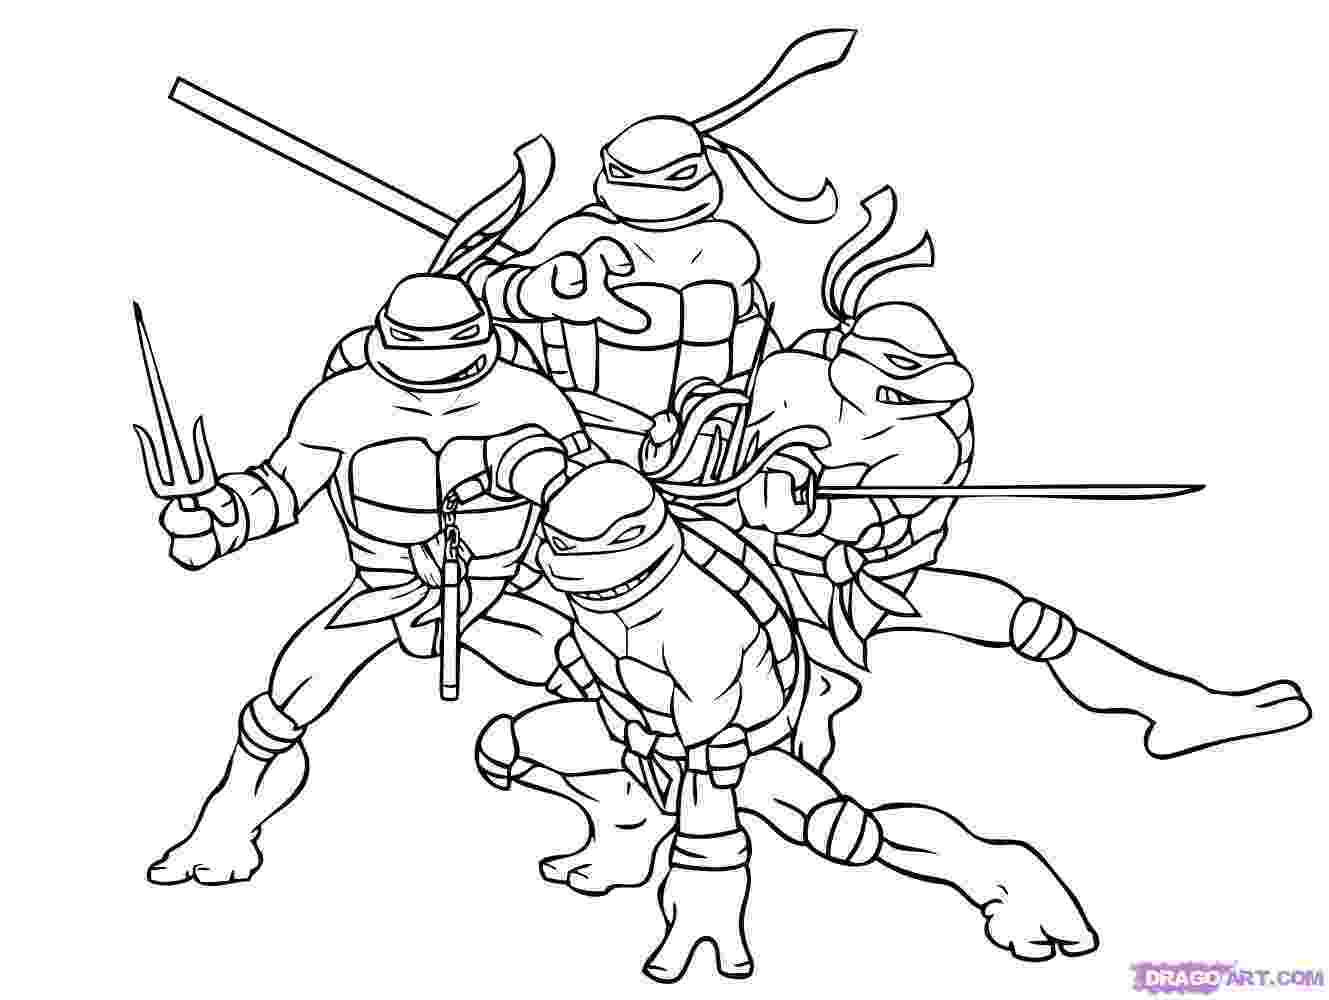 ninja turtles colouring pages fun coloring pages teenage mutant ninja turtles coloring ninja turtles pages colouring